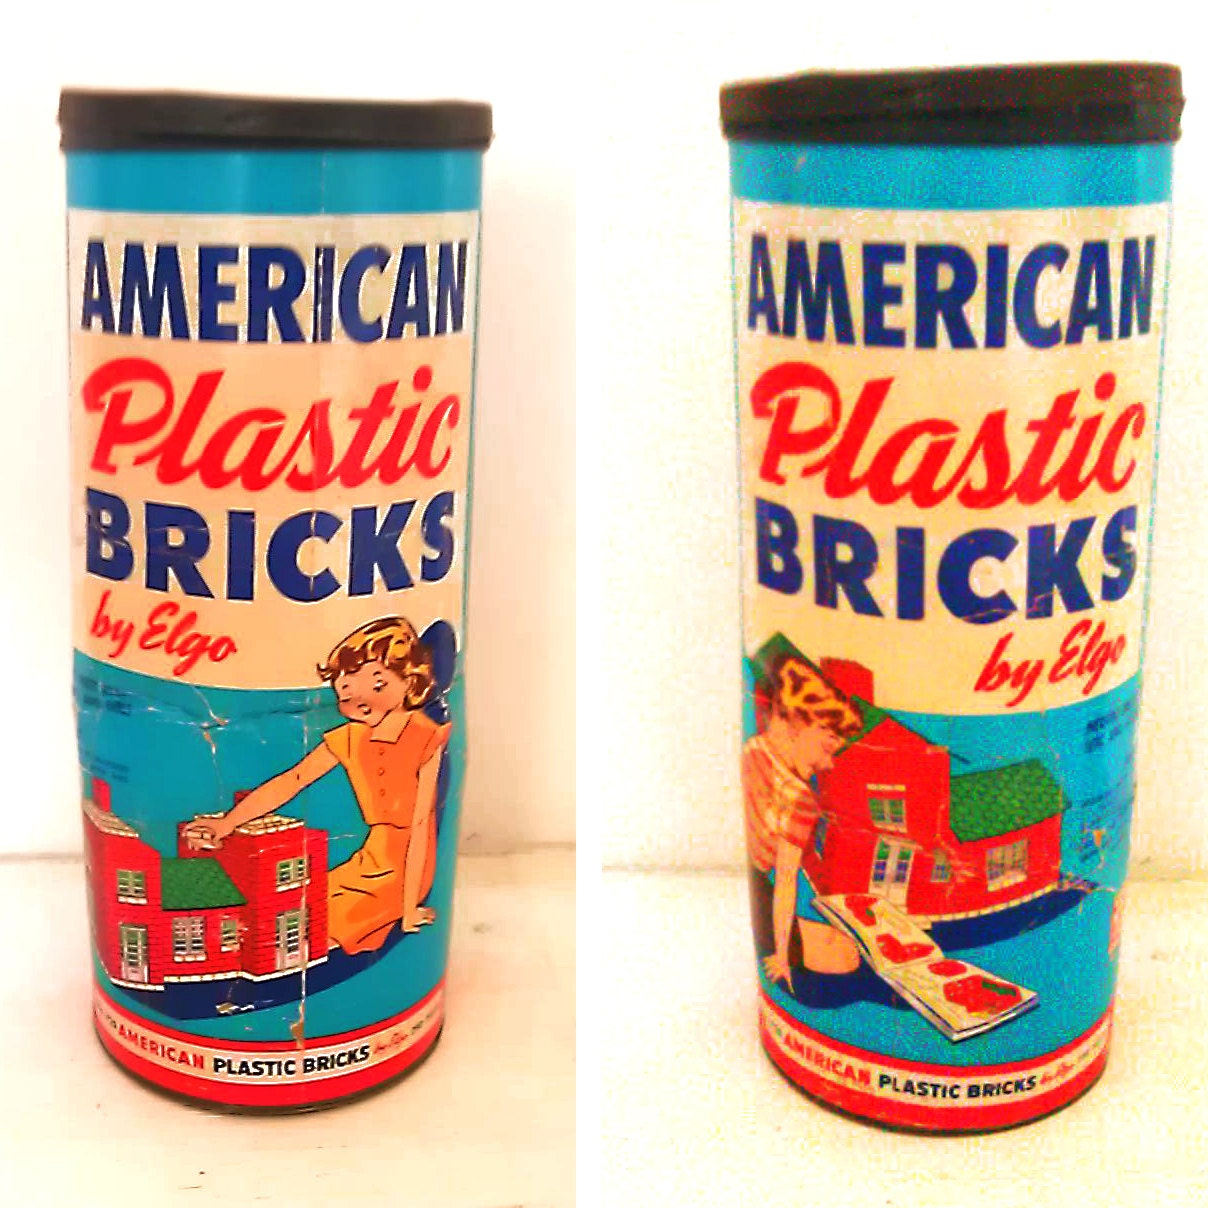 Vintage American Plastic Bricks Red Brick Building Blocks by Elgo Container Cardboard Tube Metal lid Packaging - EddiesShoppe